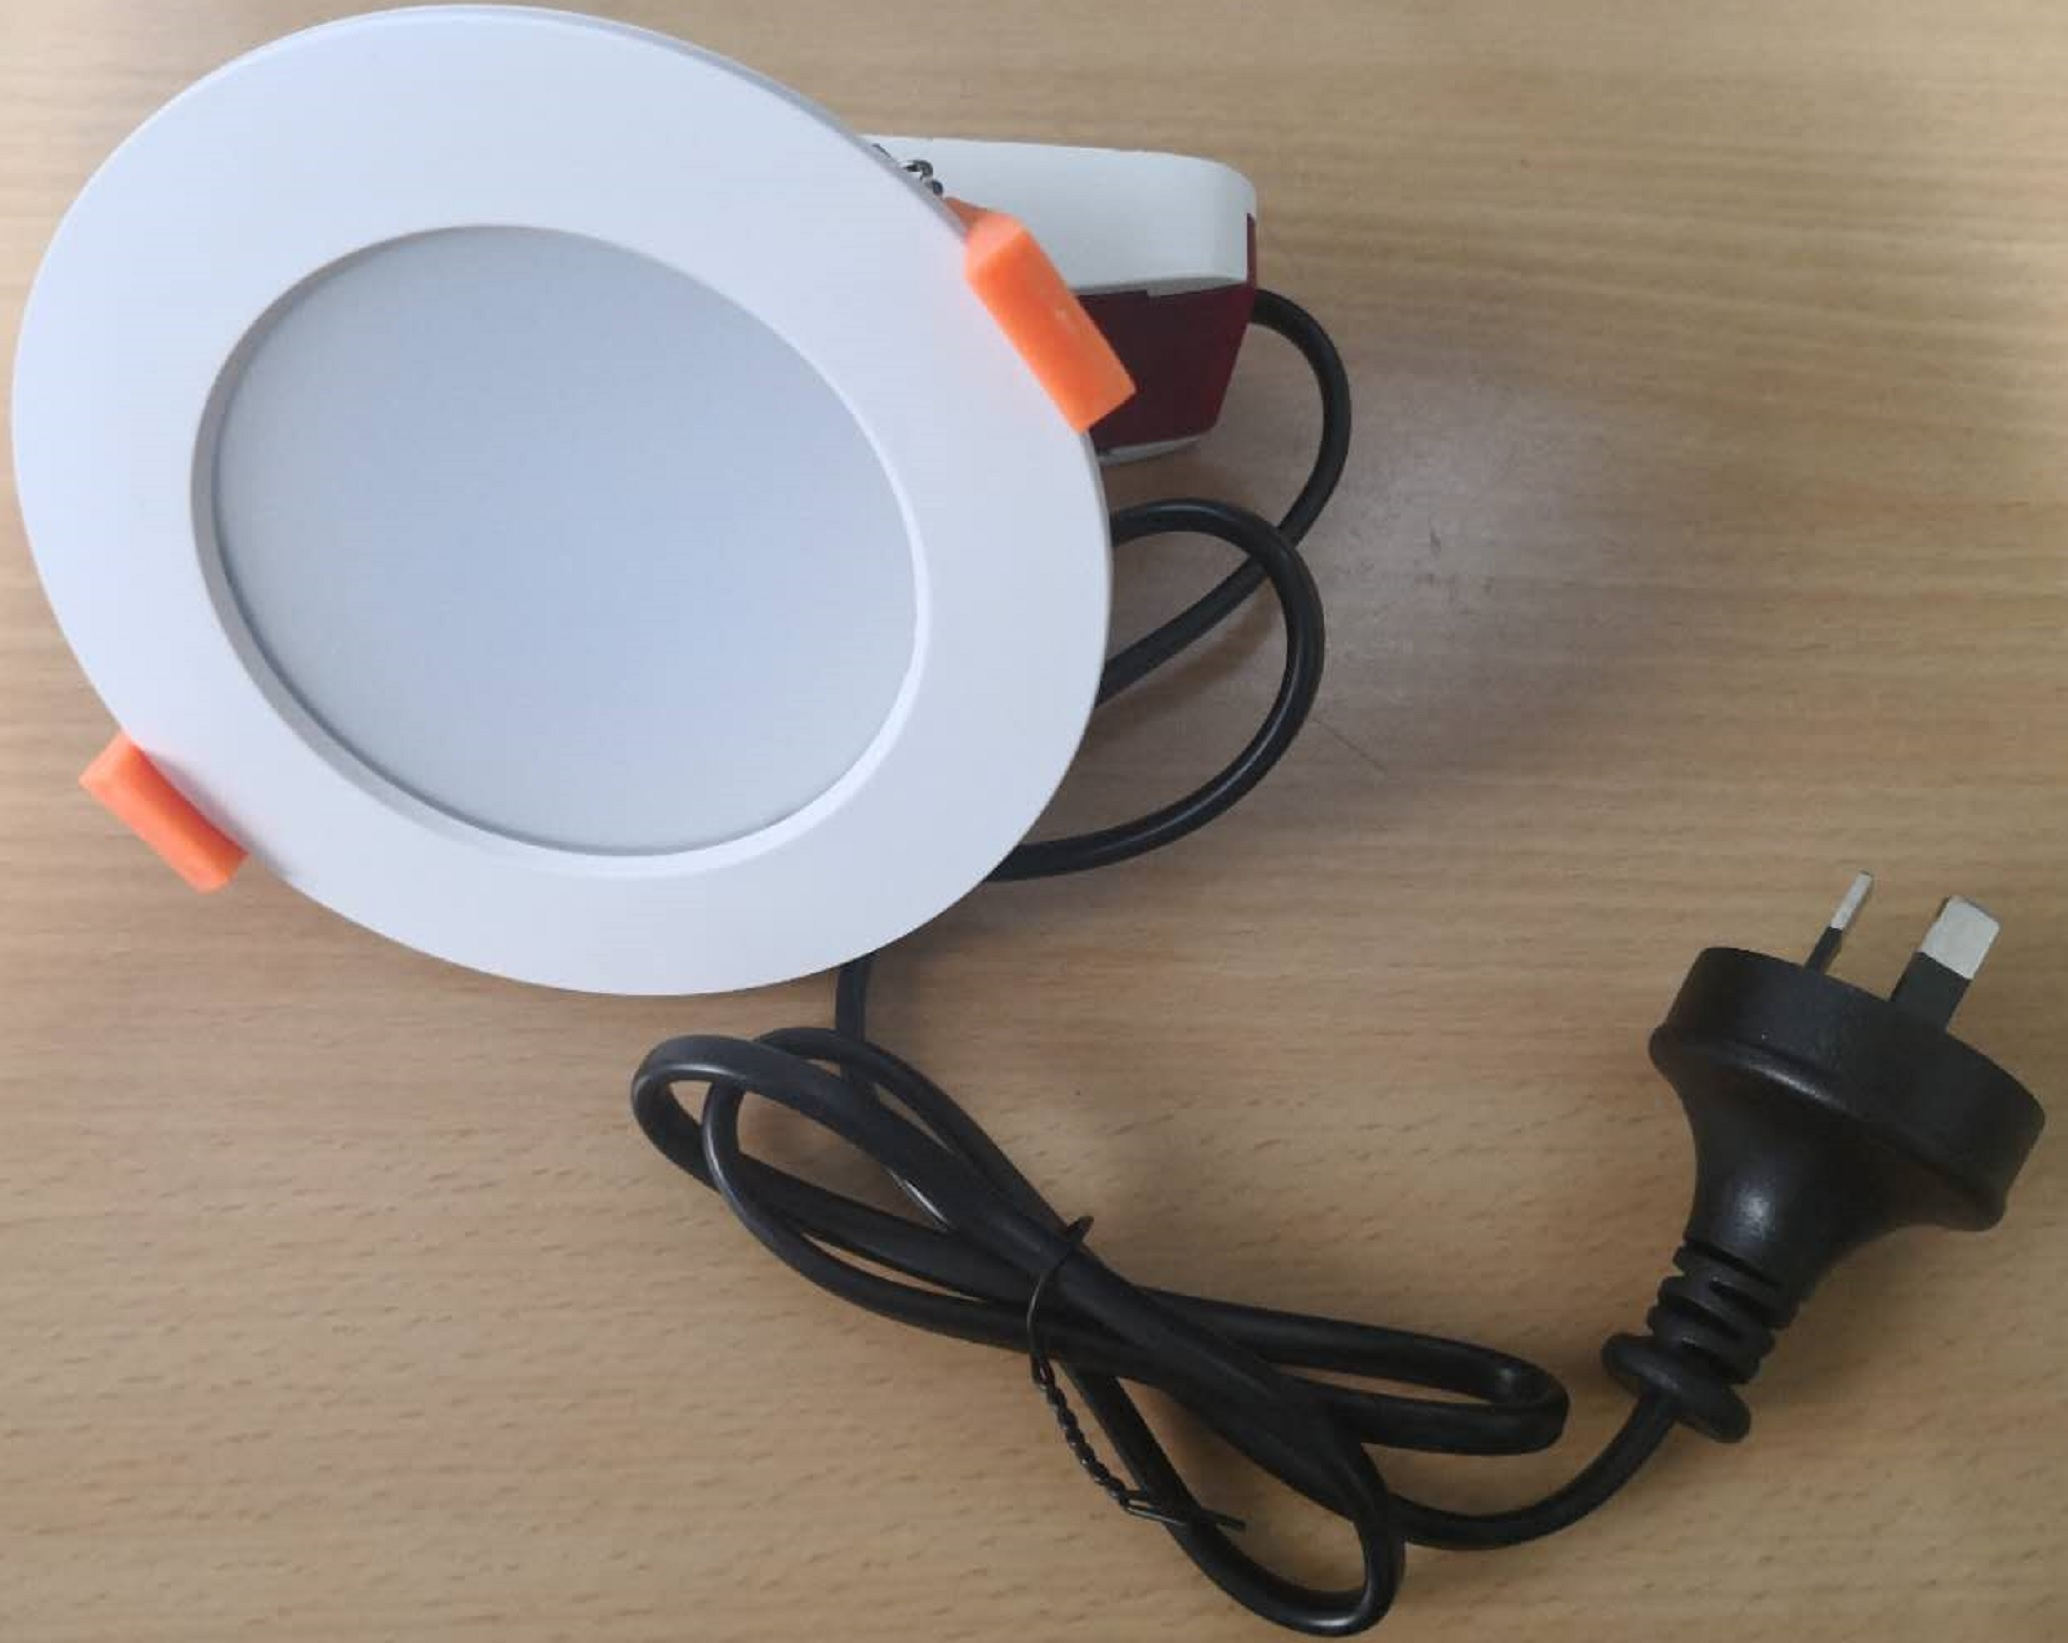 13w flat dimmable led downlight with 3 color selector switch - 3000k - 4000k - 5000k